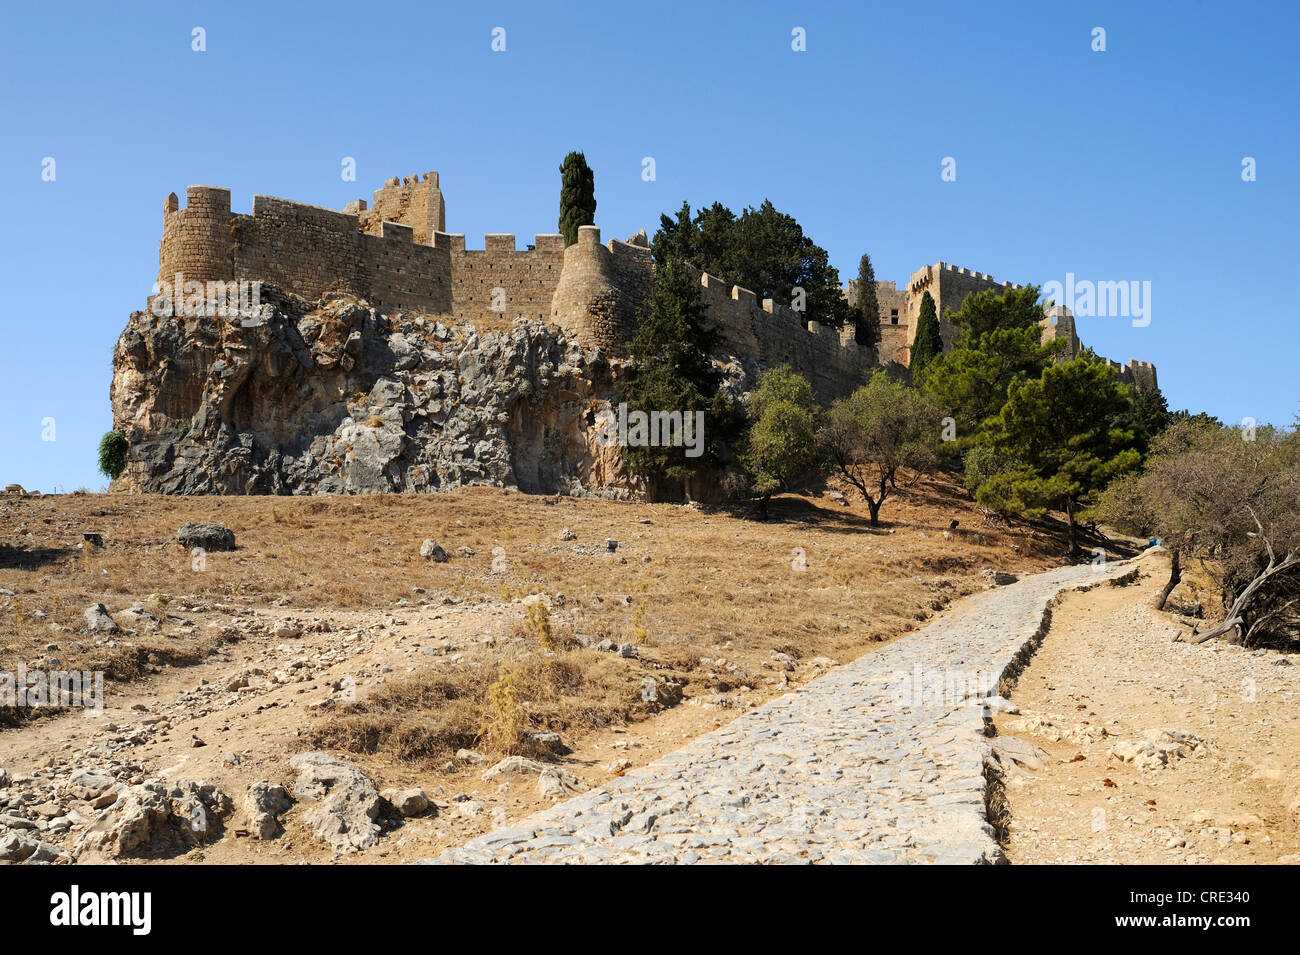 Acropolis, Lindos, Rhodes island, Greece, Europe Stock Photo